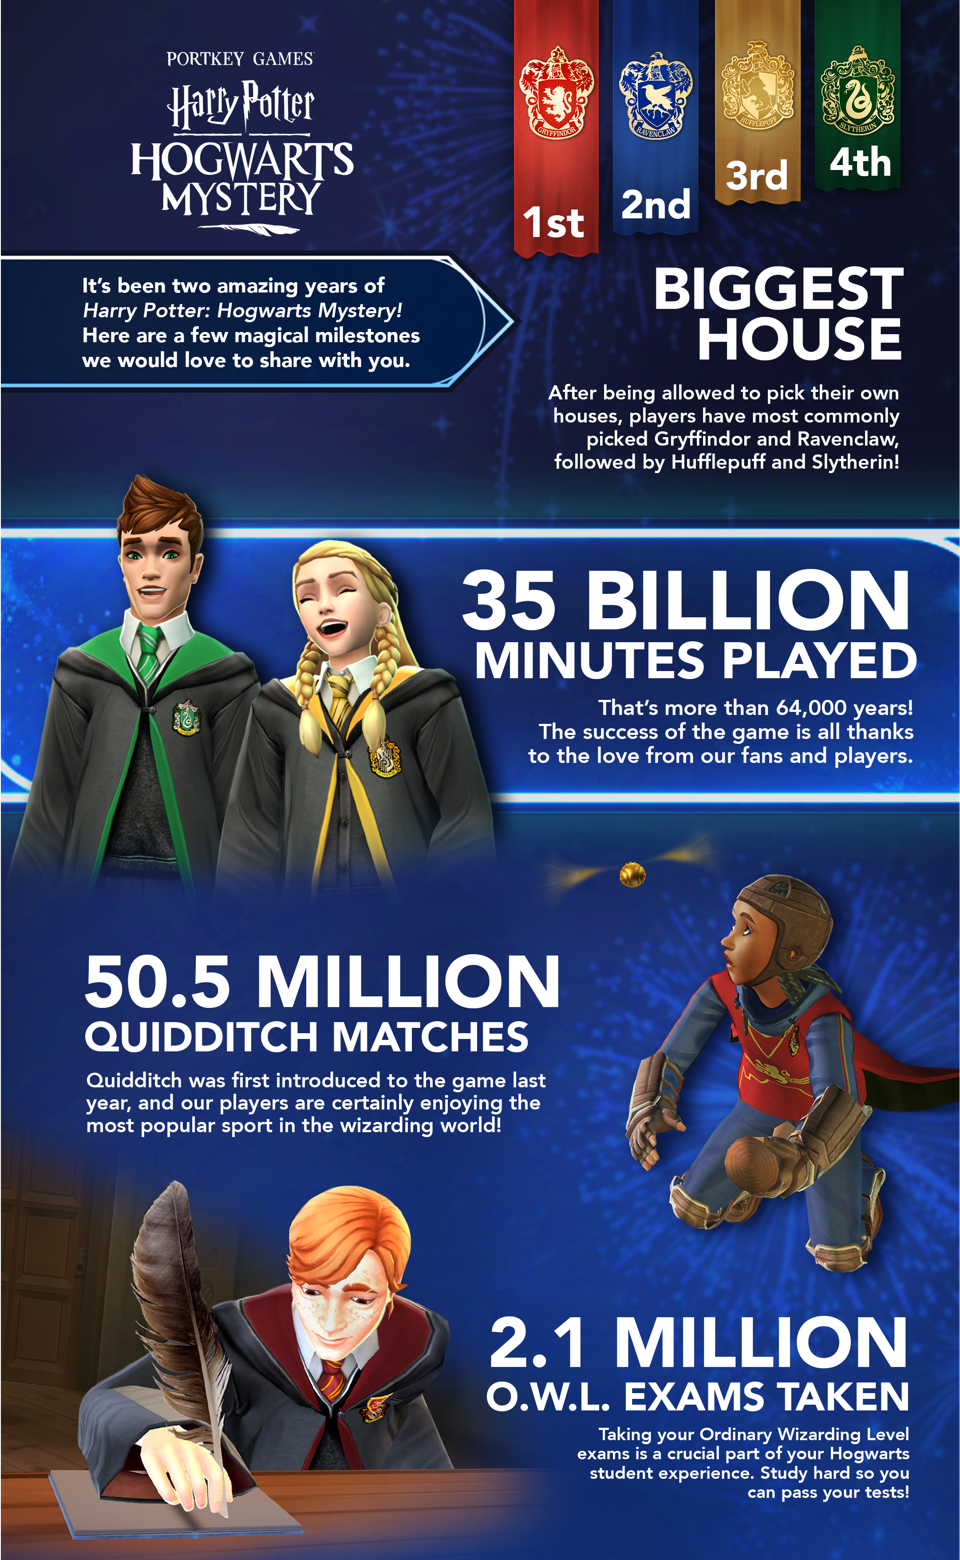 'Harry Potter: Hogwarts Mystery' anniversary infographic: Part 1